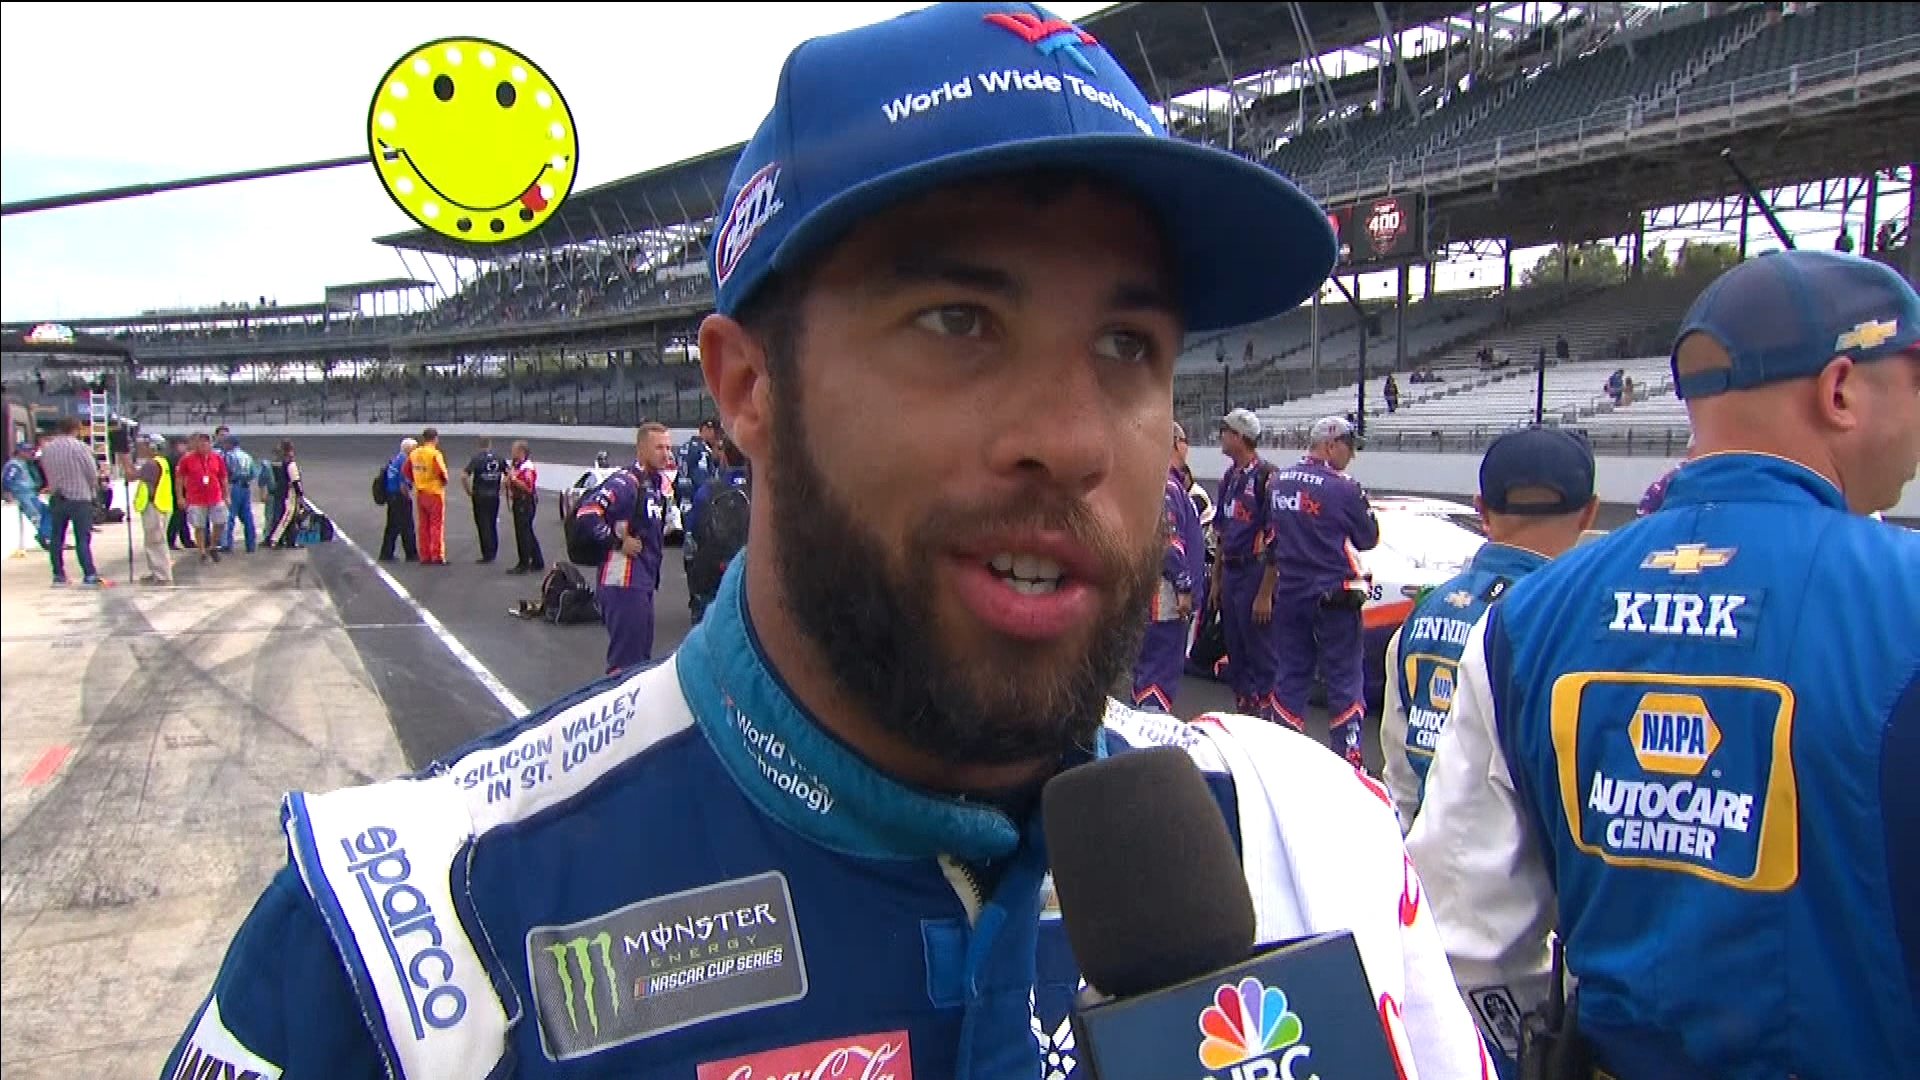 Bubba Wallace impresses with third-place finish in Brickyard